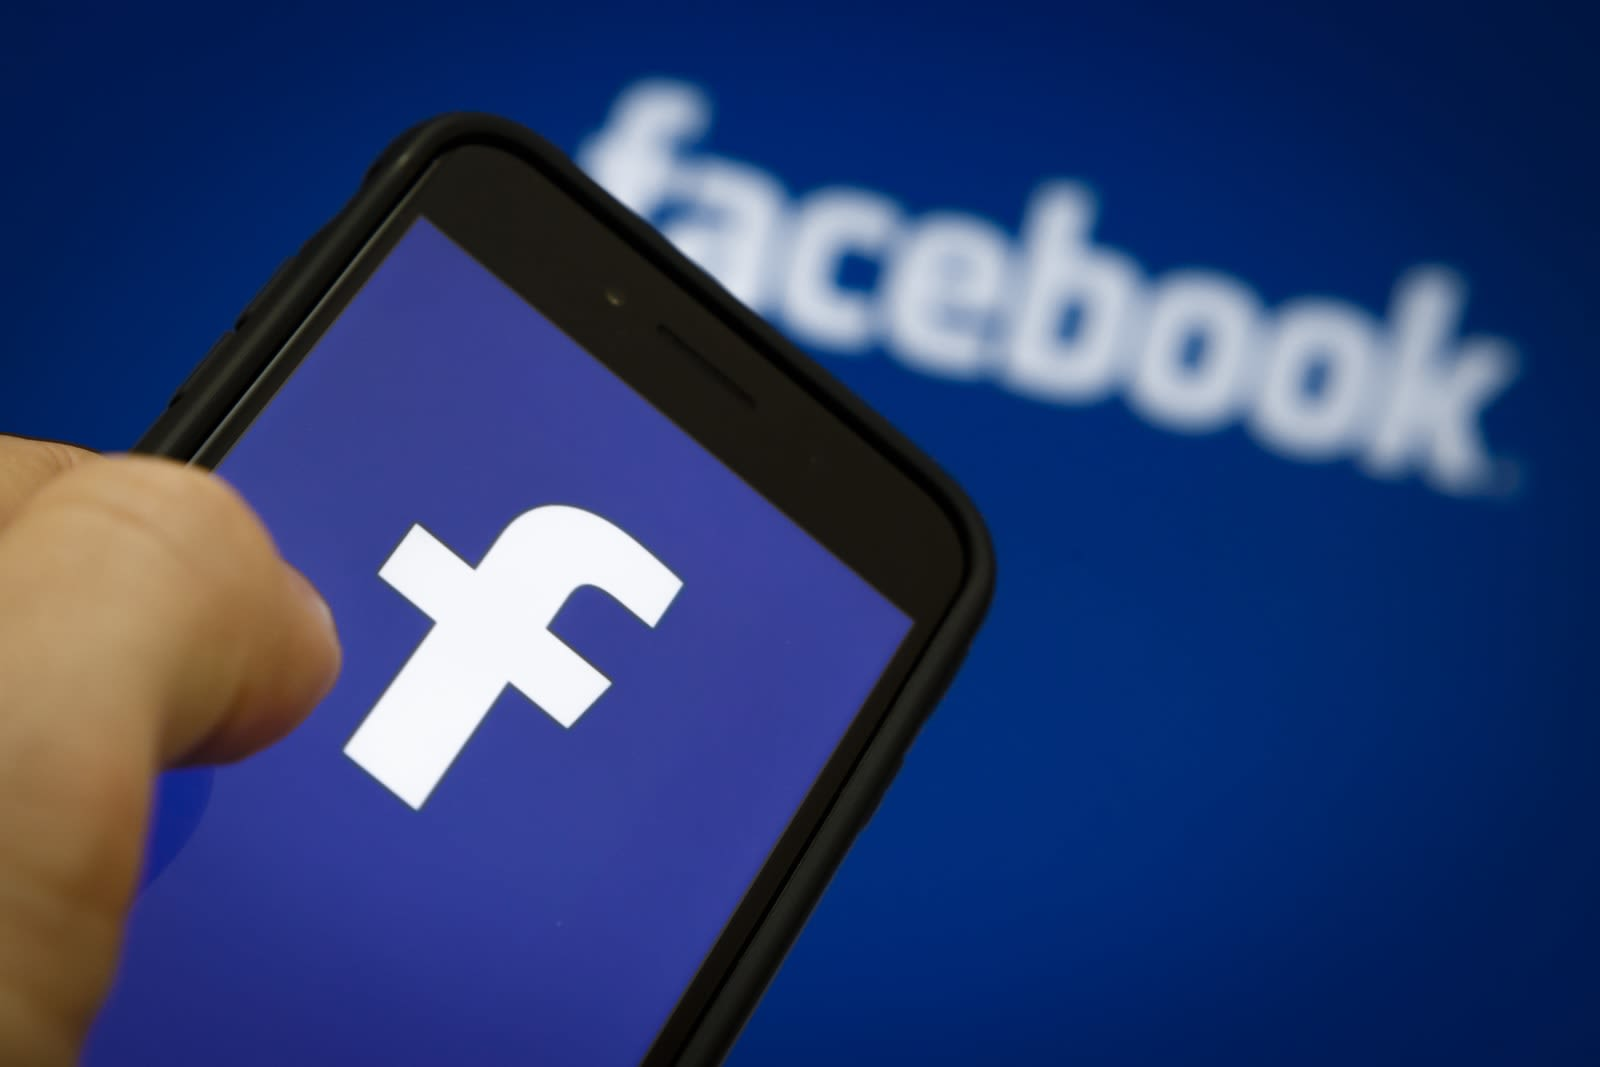 Facebook's recent hack exposed private information of 29